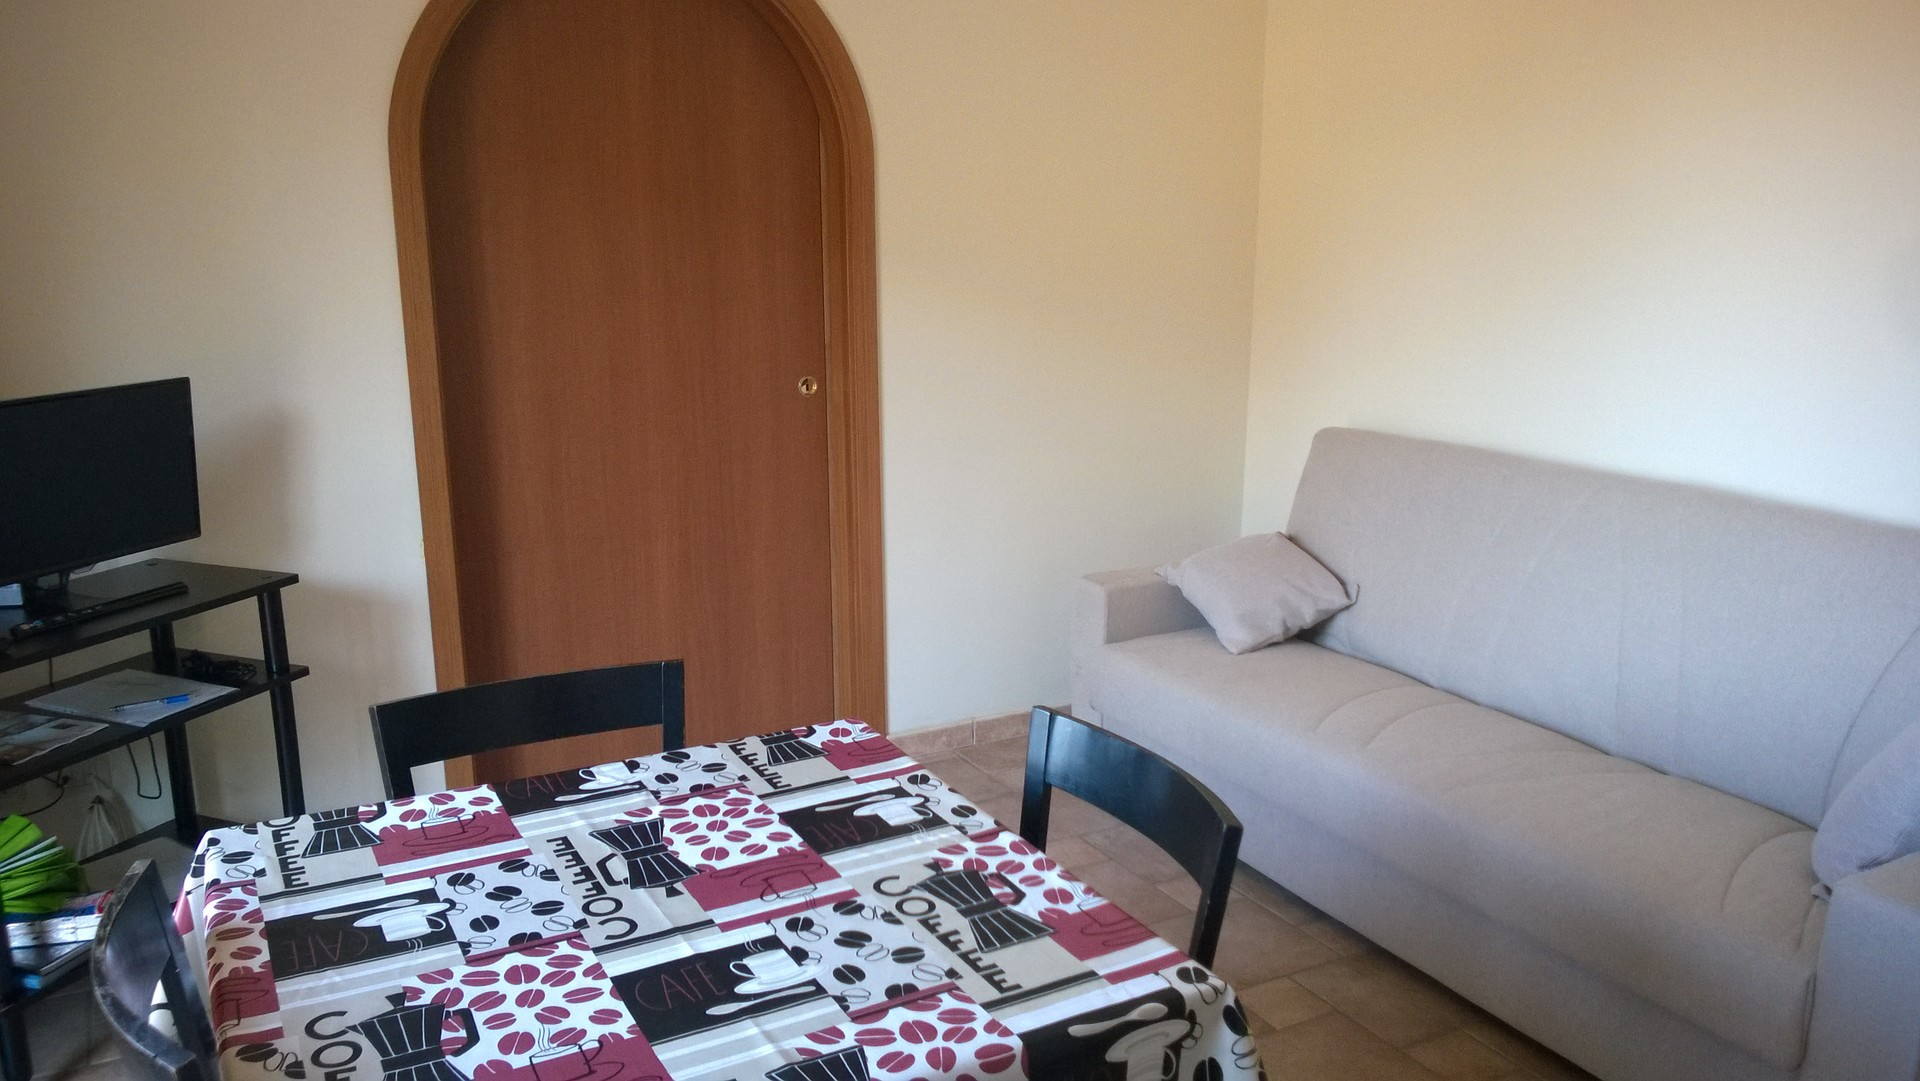 Furnished single room for rent in a comfortable 3-room terraced